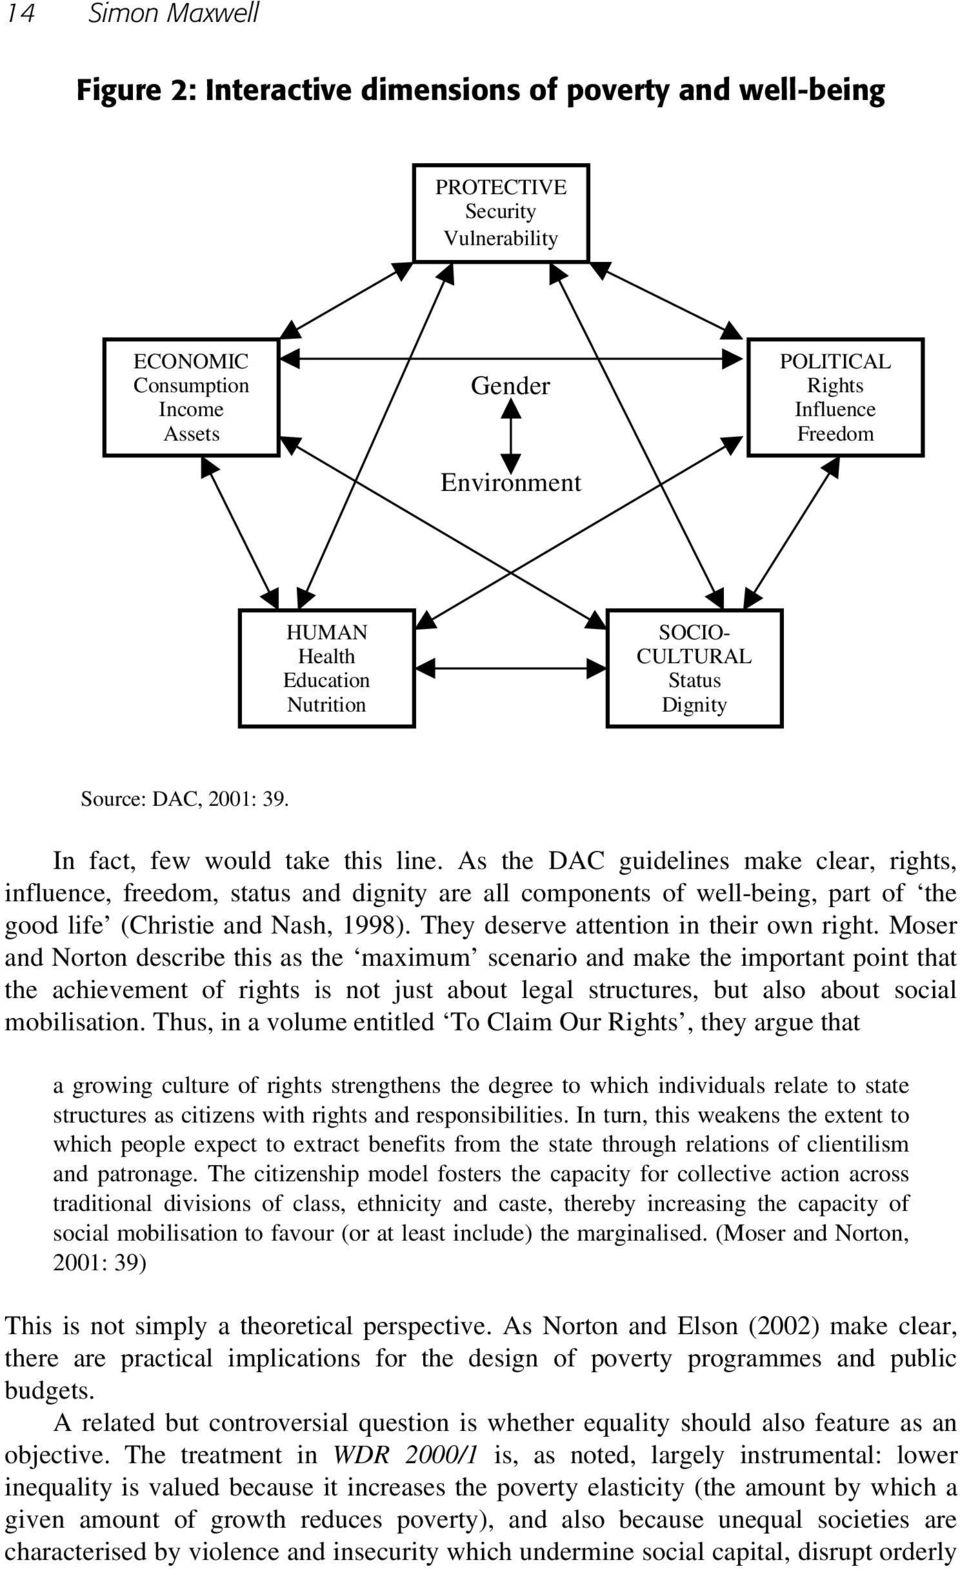 As the DAC guidelines make clear, rights, influence, freedom, status and dignity are all components of well-being, part of the good life (Christie and Nash, 1998).